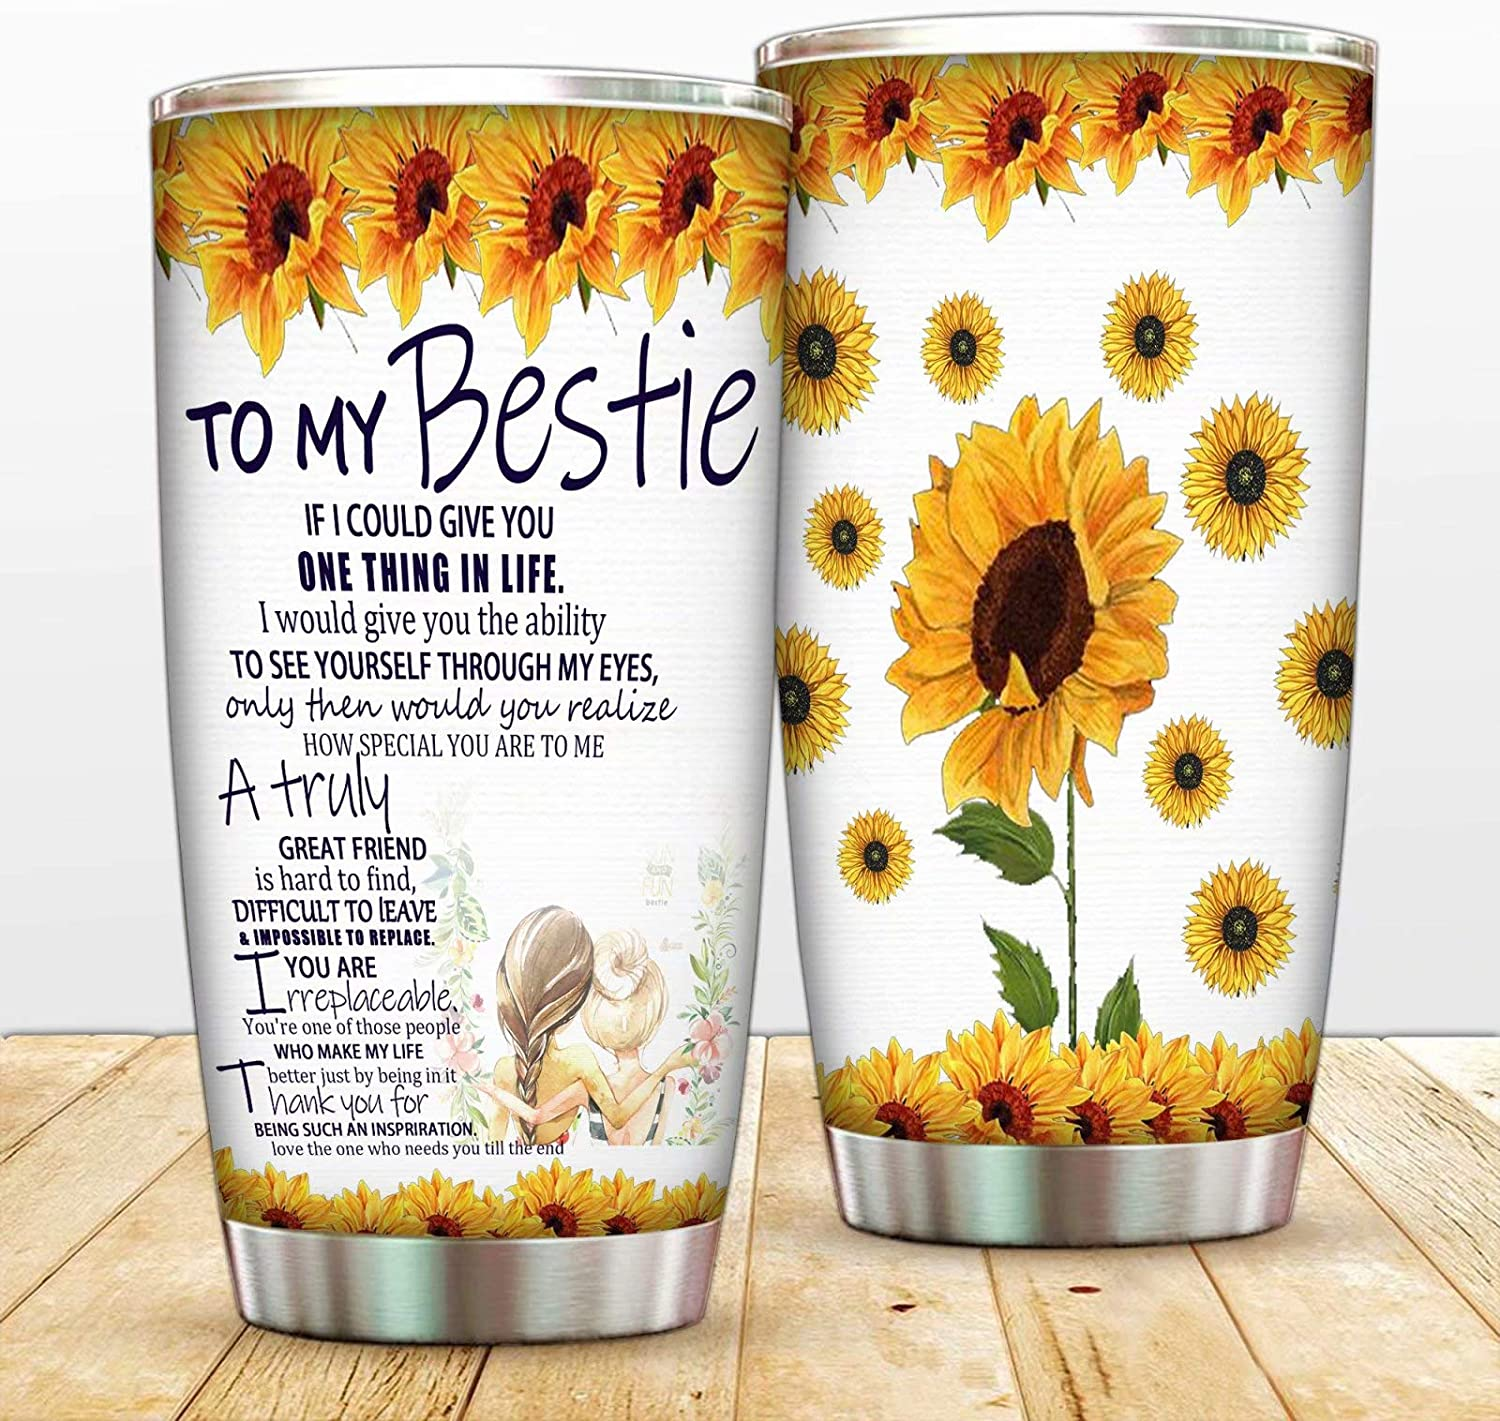 Travel Tumbler Soul Sister Drink Tumbler with Straw Personalized Best Friend Tumbler BFF Gift Bestie Tumbler Skinny Tumbler Gift